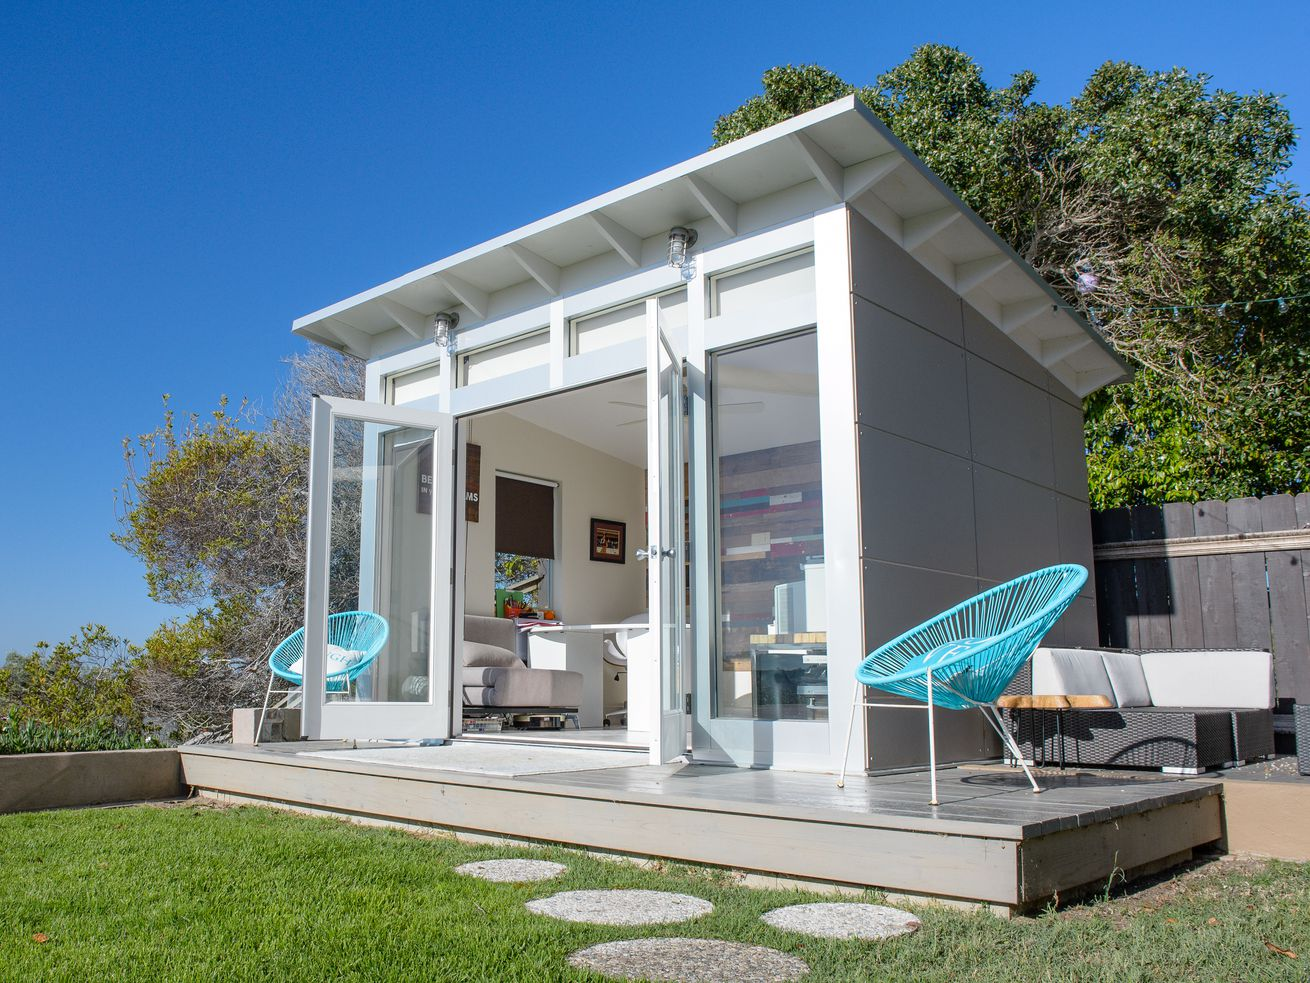 A 10-foot by 12-foot Studio Shed Signature Series model makes a roomy backyard home office.